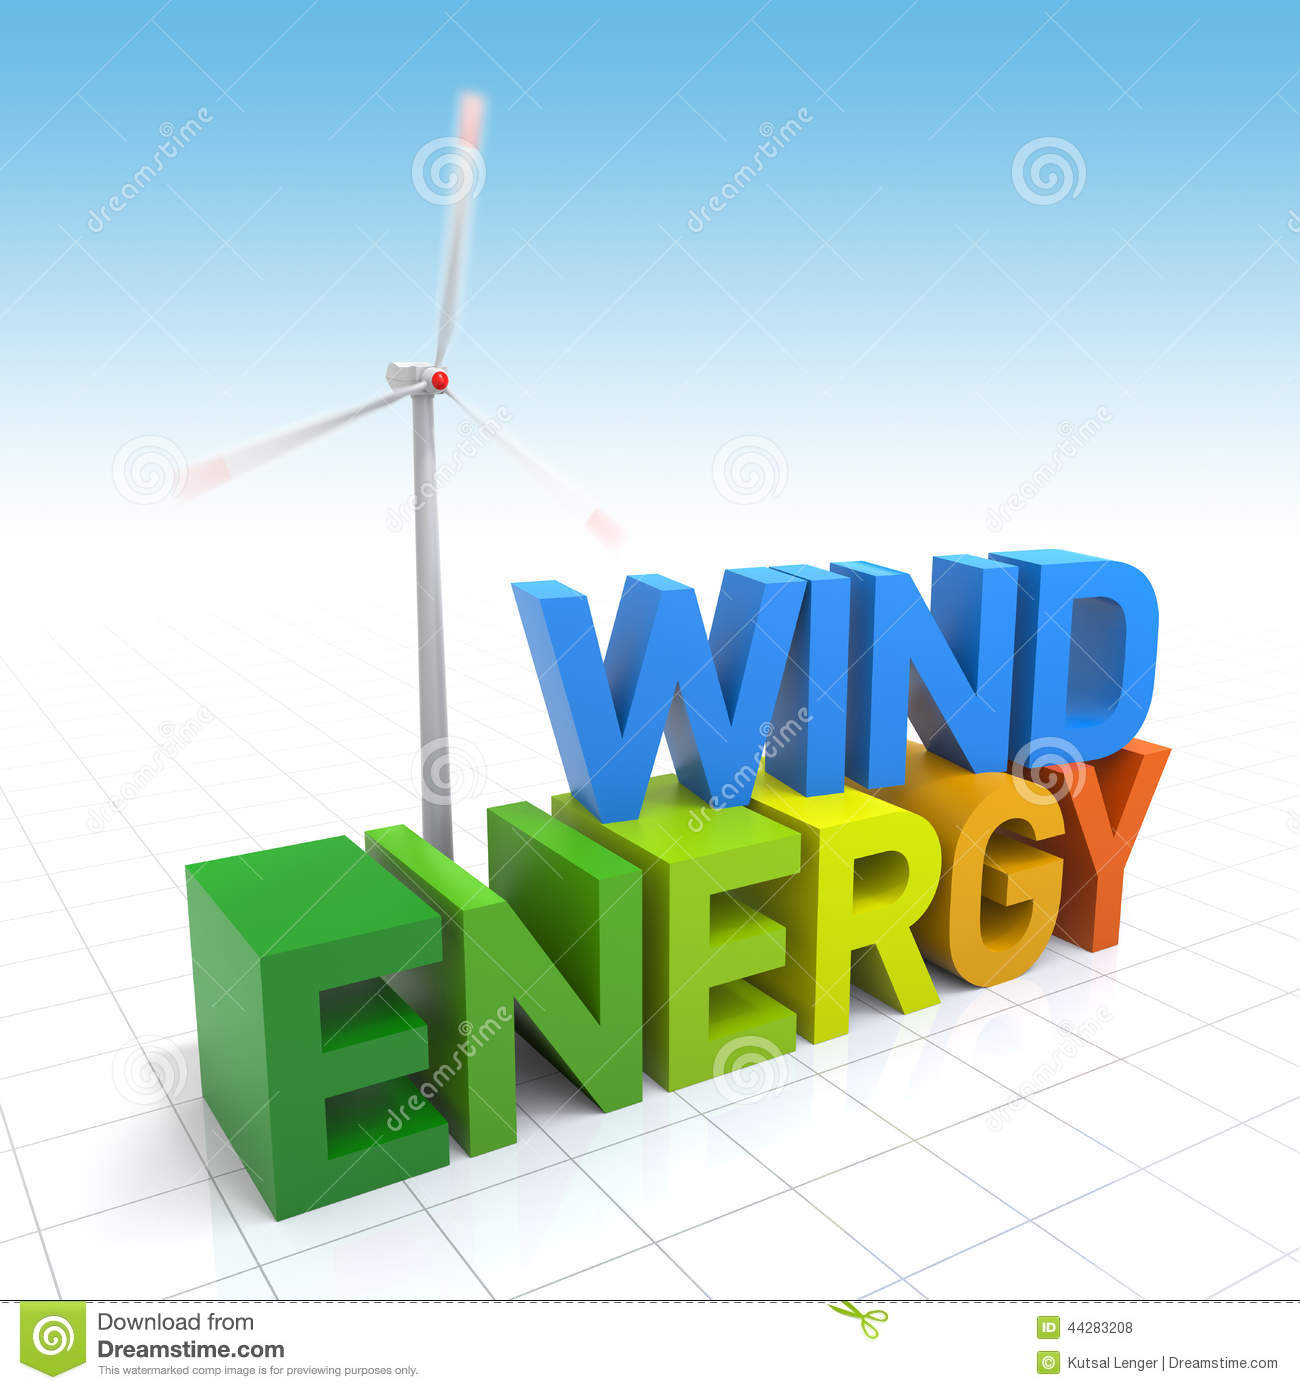 Wind Turbine and 3D Wind Energy text. Digitally Generated Image.